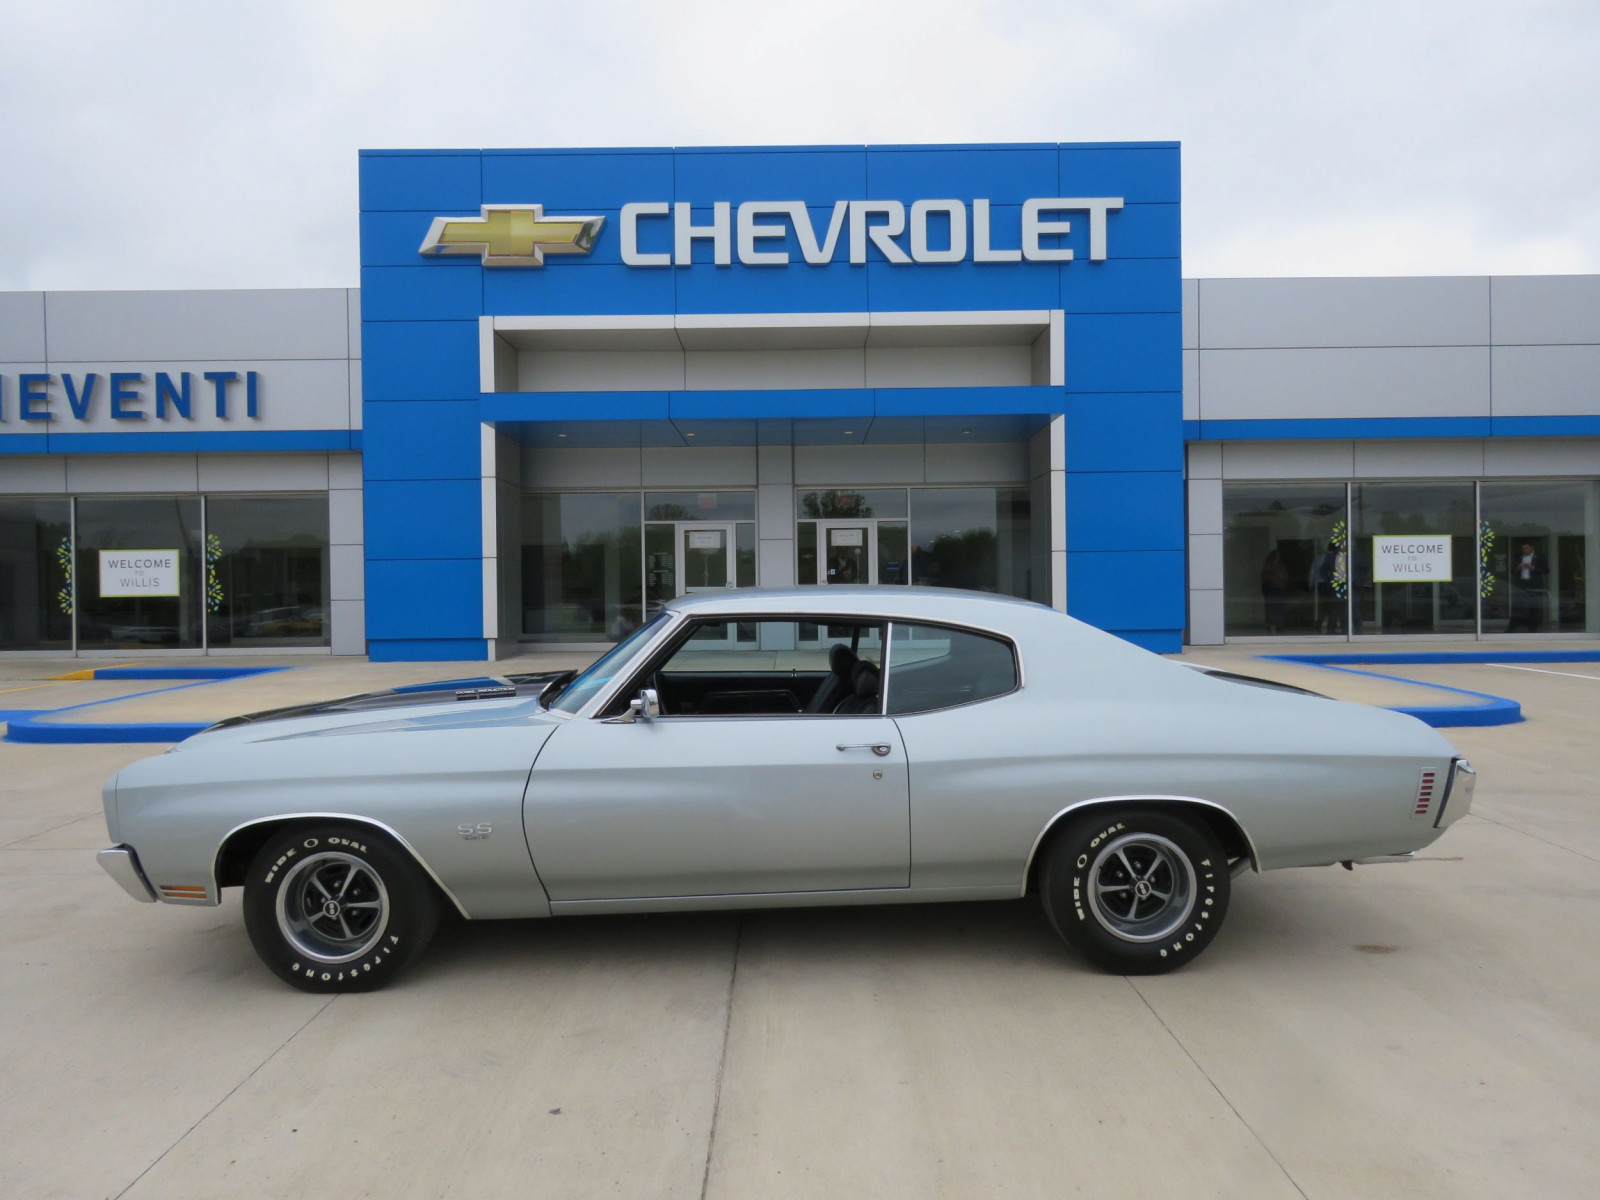 1970 Chevrolet Chevelle SS Coupe - Image 1